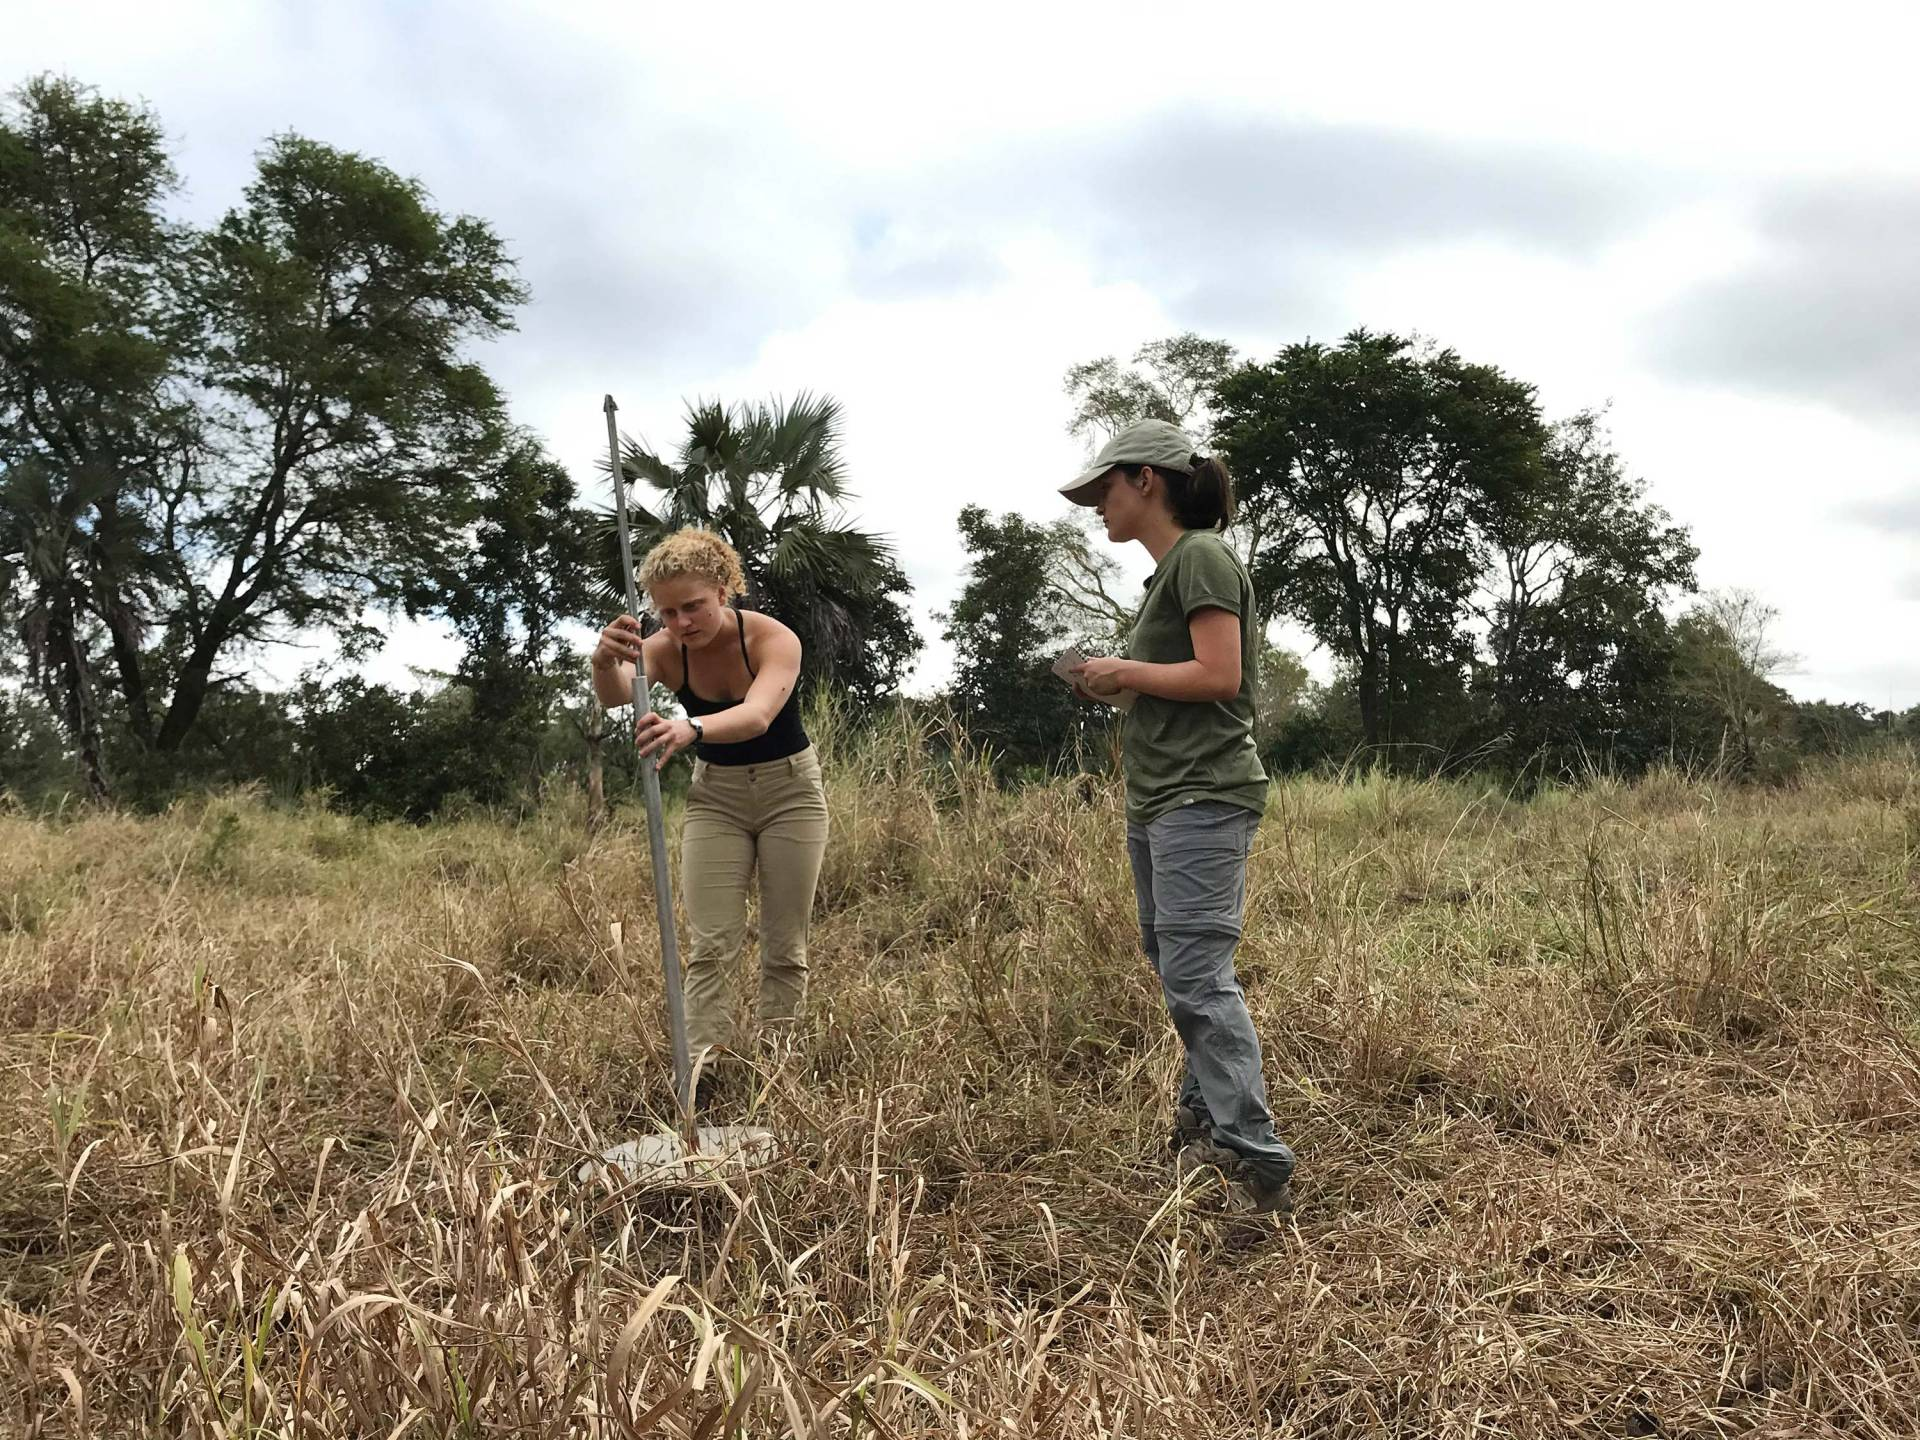 Stahl and another student take measurements in a field